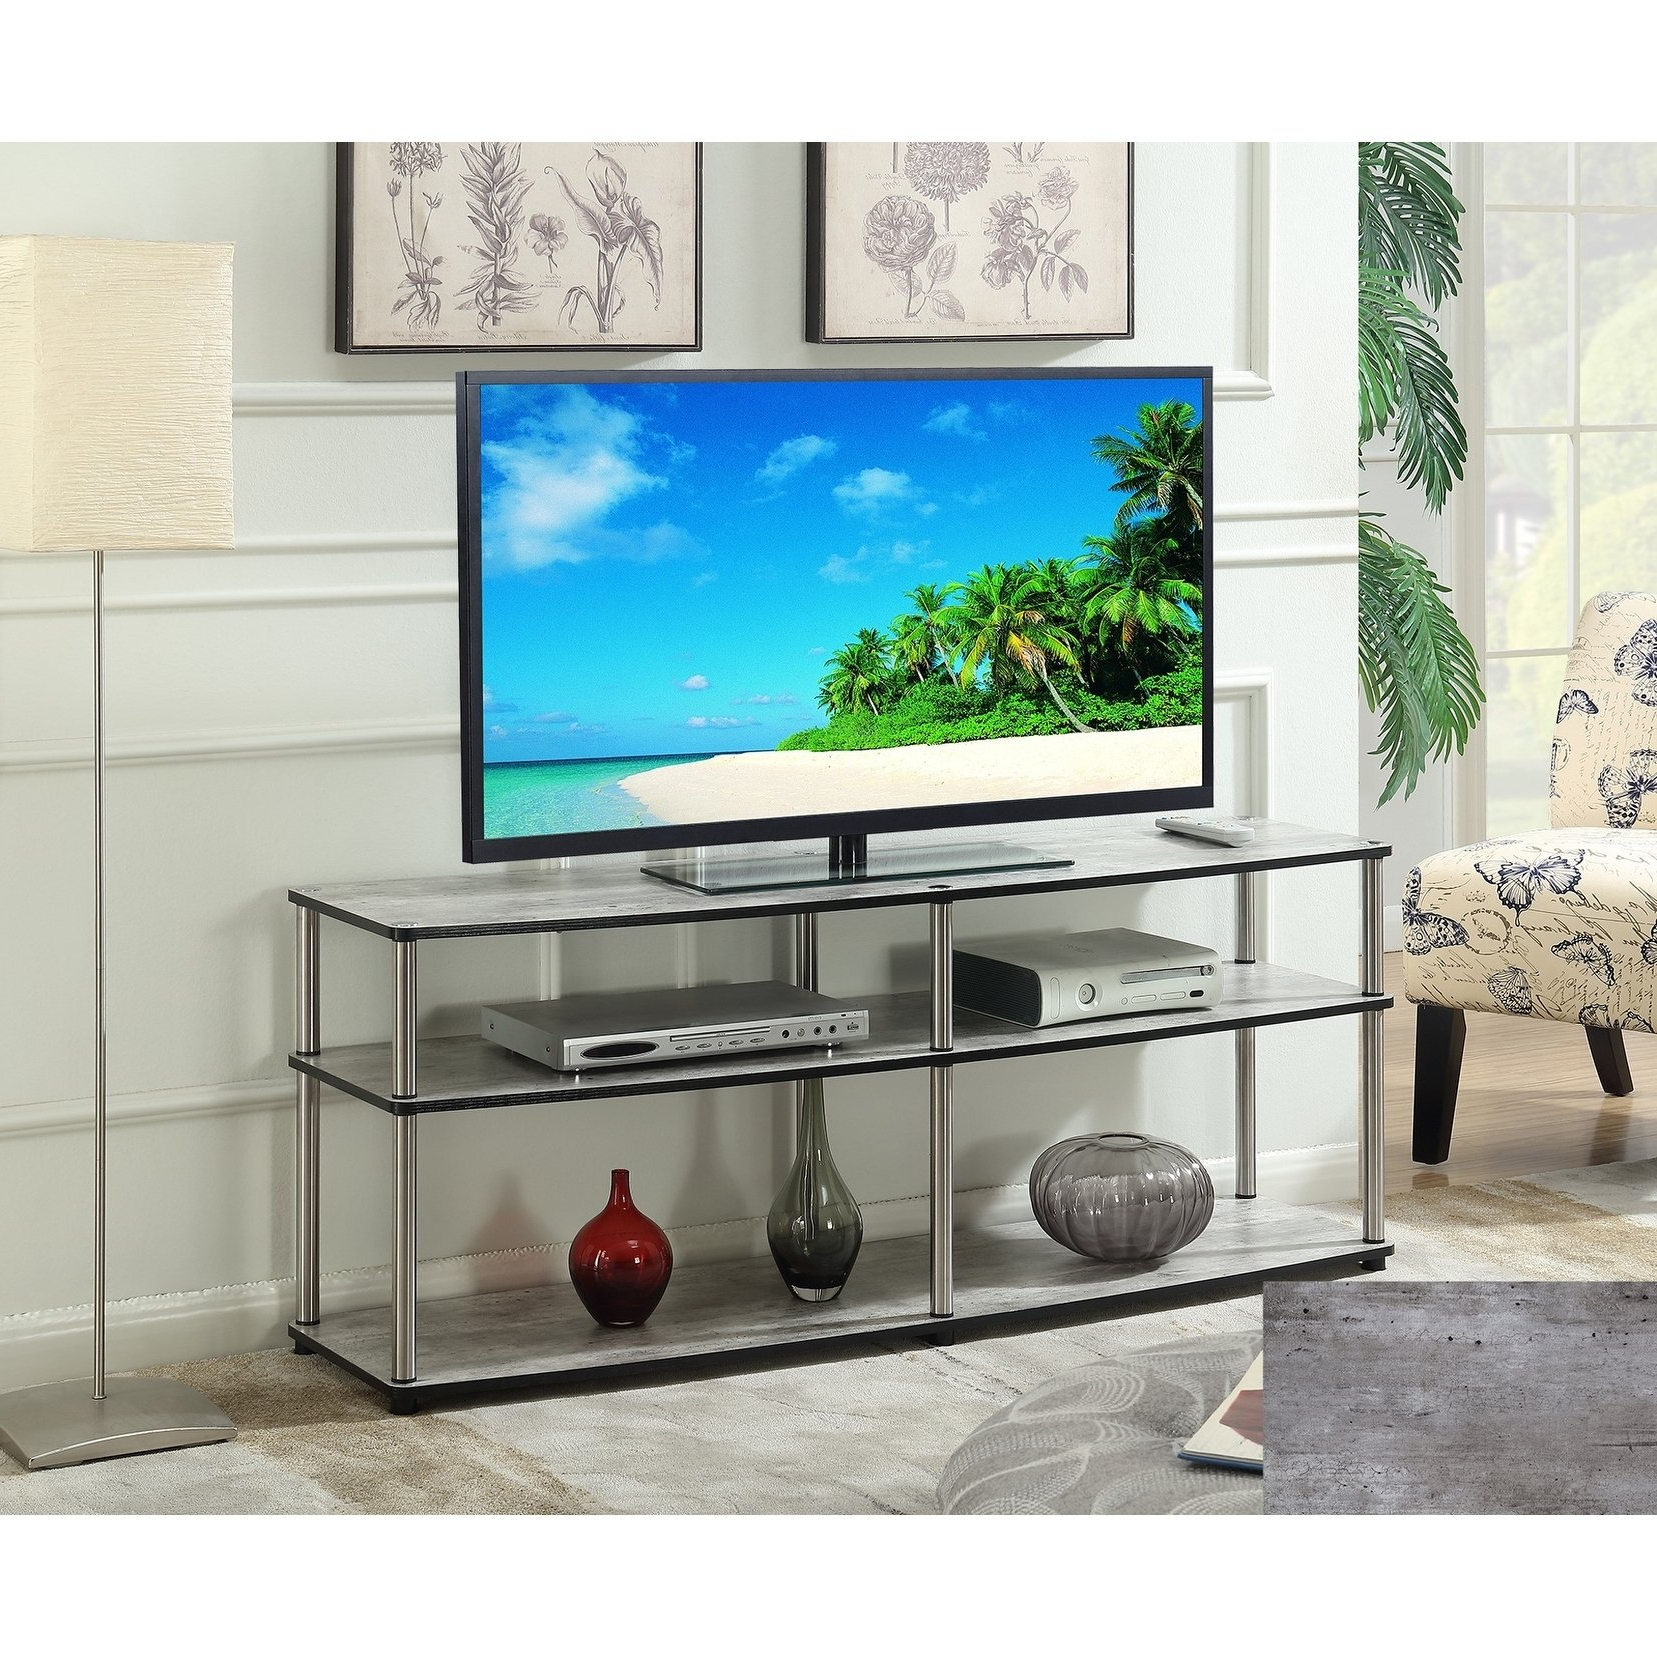 3 Tv Stands & Entertainment Centers For Less | Overstock For Rowan 45 Inch Tv Stands (View 2 of 20)